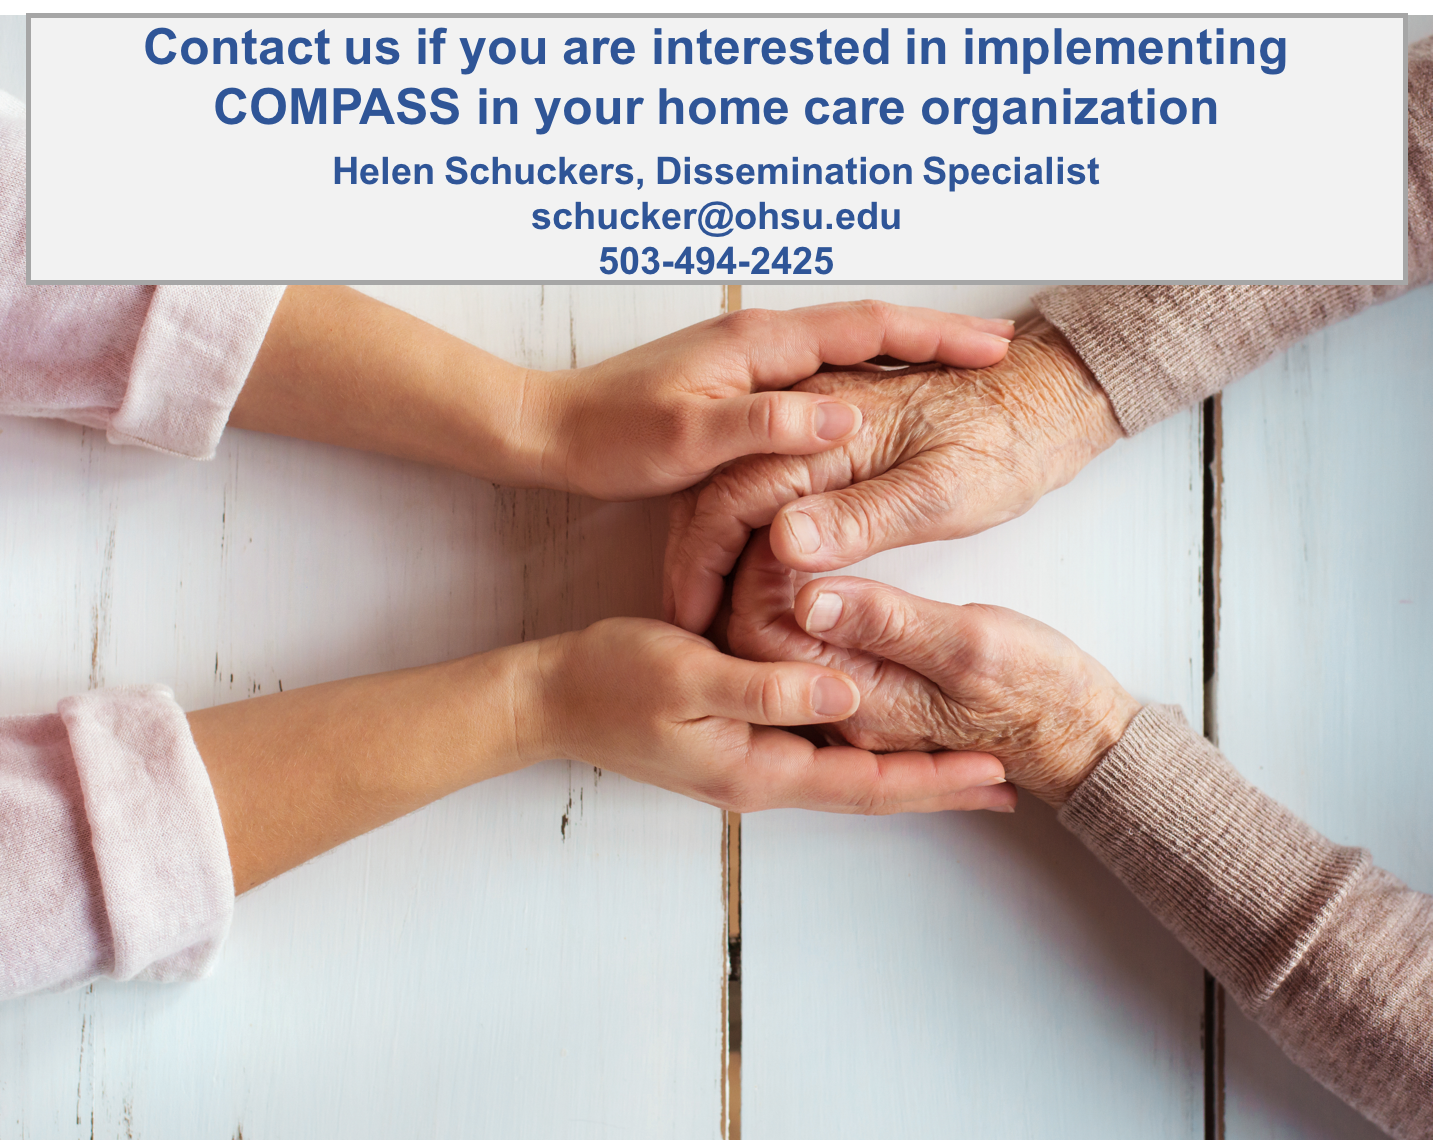 Peer-led program improves home care workers' health, wellbeing and behavior, contact our dissemination specialist Helen Schuckers at schucker@ohsu.edu with questions or if you organization is interested in implementing COMPASS